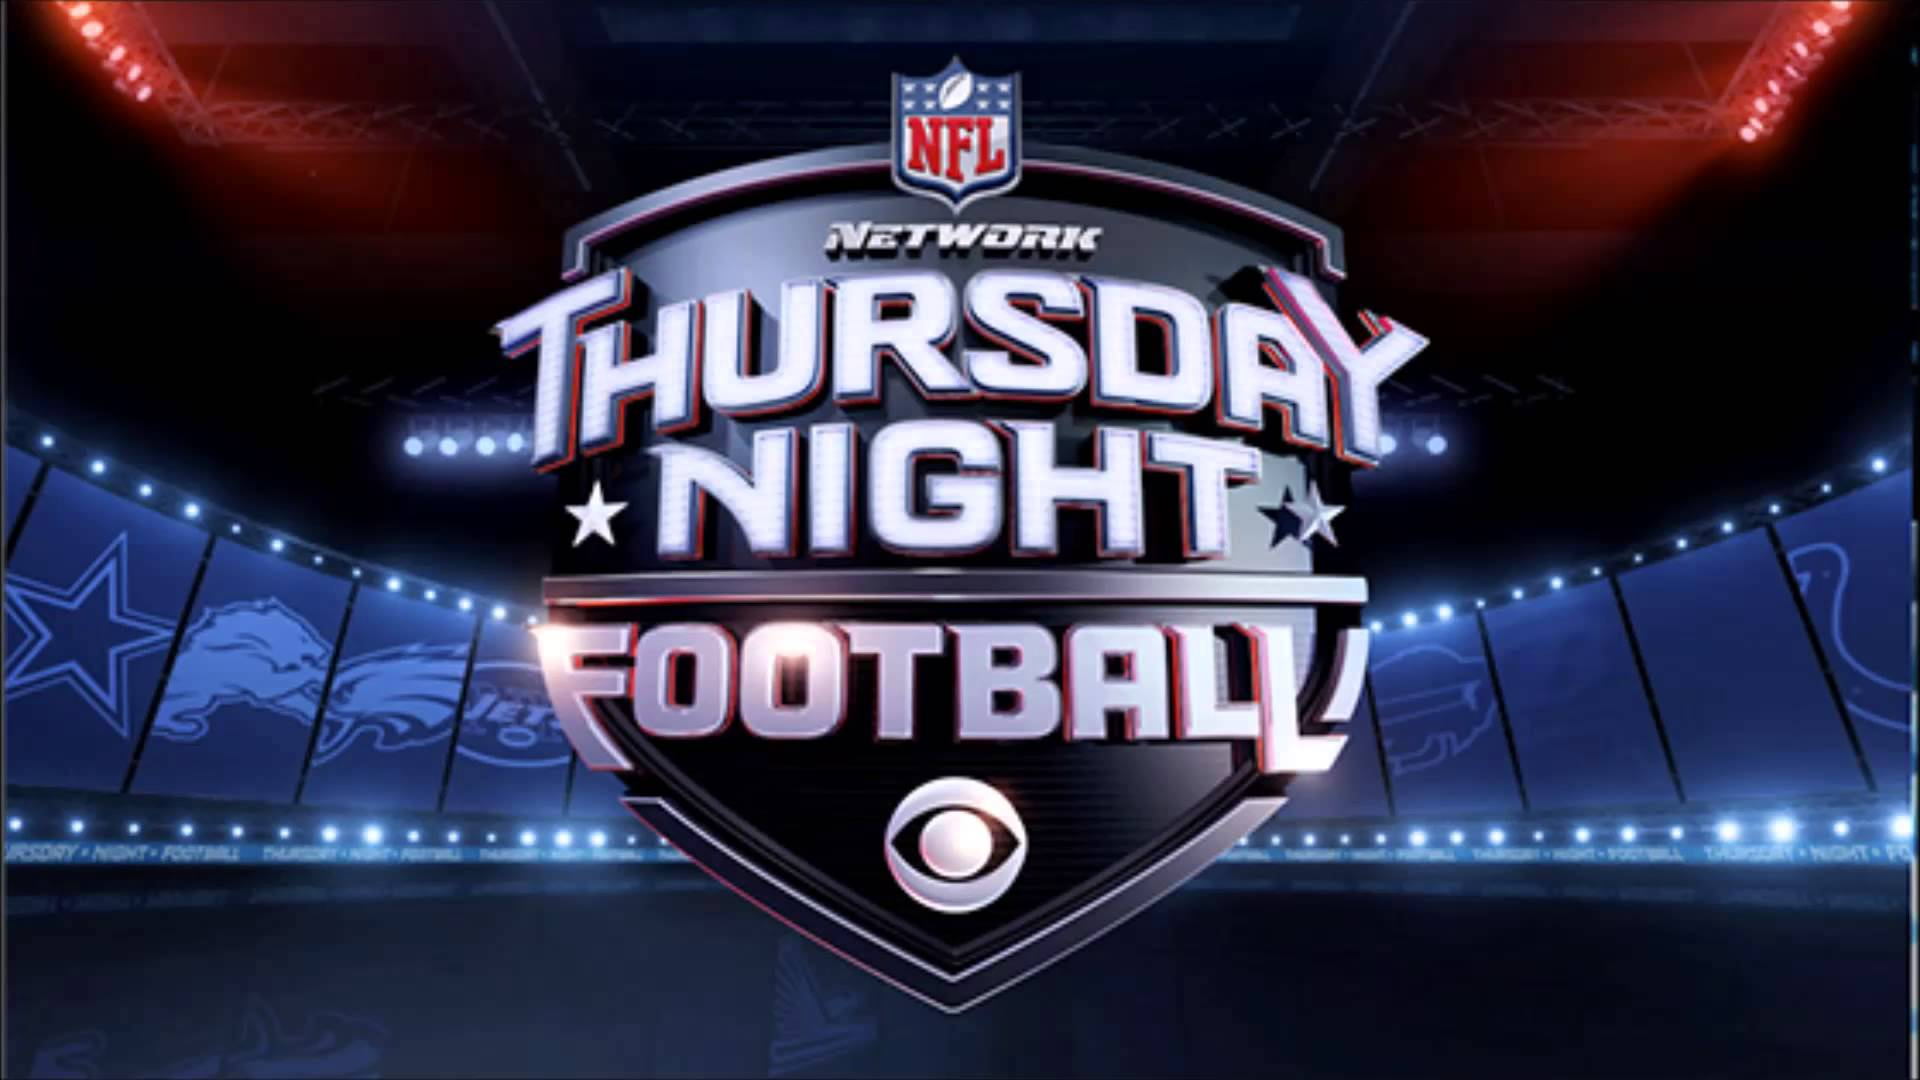 Is the NFL Thinking Of Scrapping the Idea of \'Thursday Night.